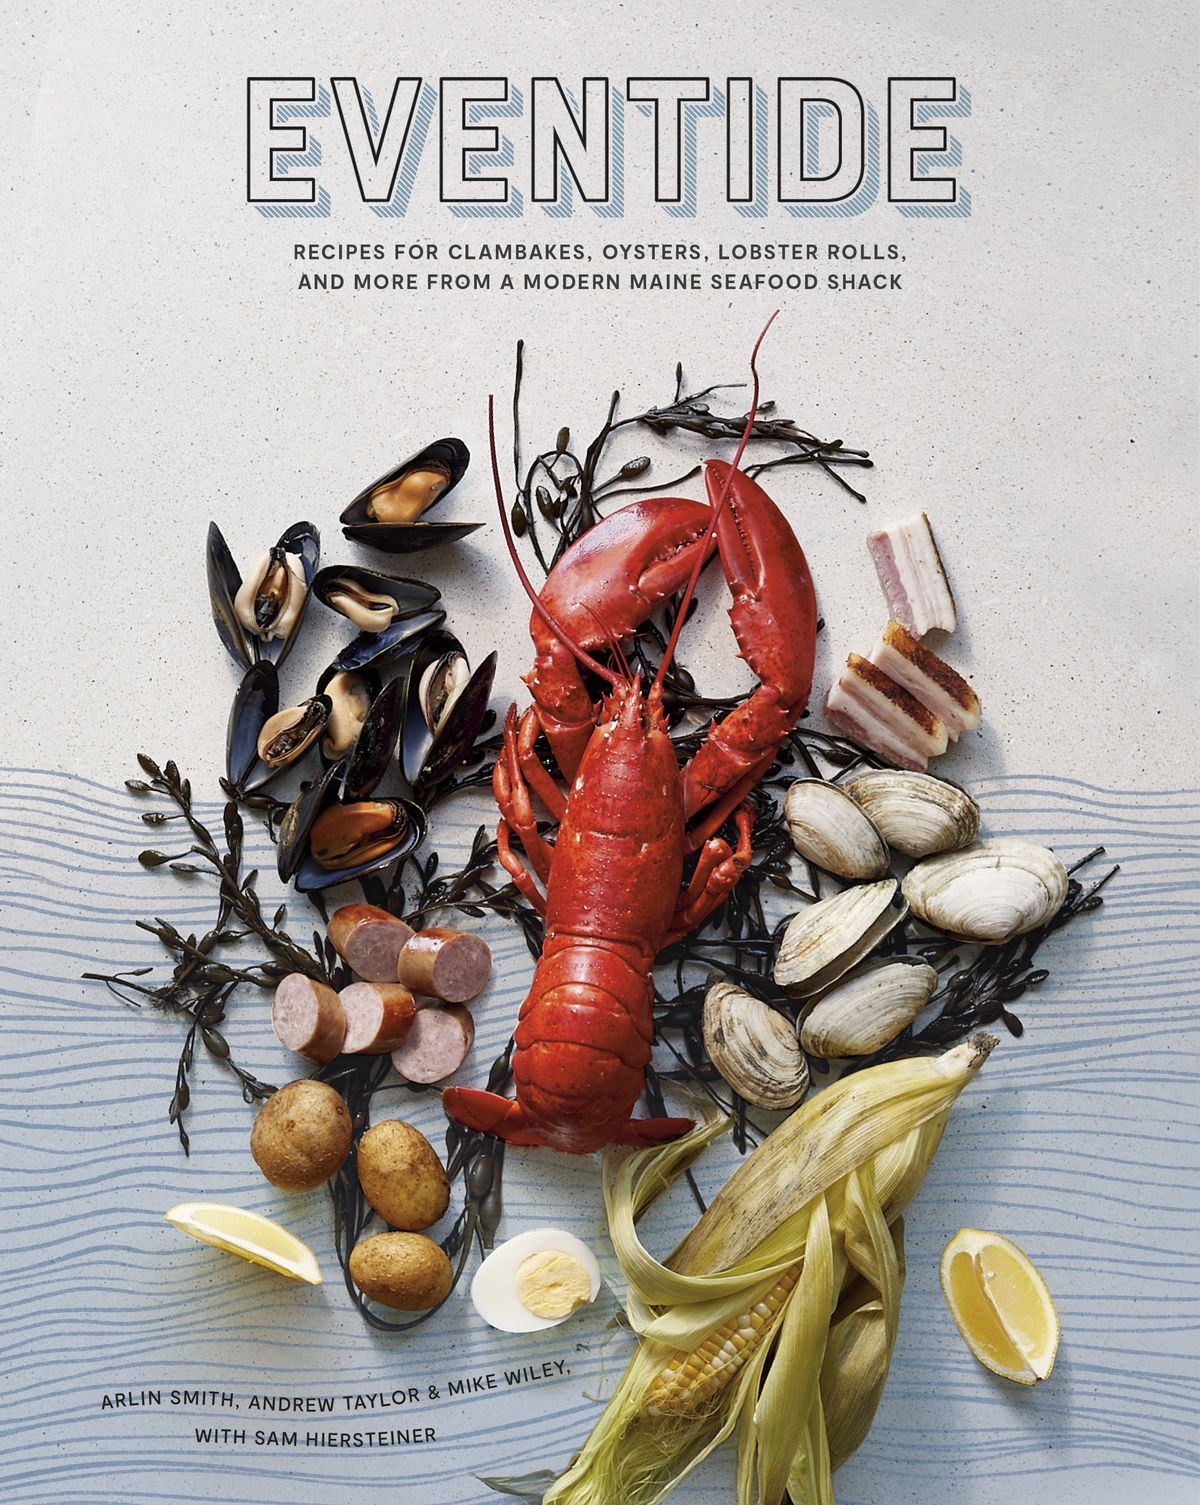 Cover of a cookbook called Eventide: Recipes for Clambakes, Oysters, Lobster Rolls, and More From a Modern Maine Seafood Shack. The cover features a photograph of a lobster, potatoes, sausage, corn, and more ingredients, spread over an ocean-like pattern of blue lines.